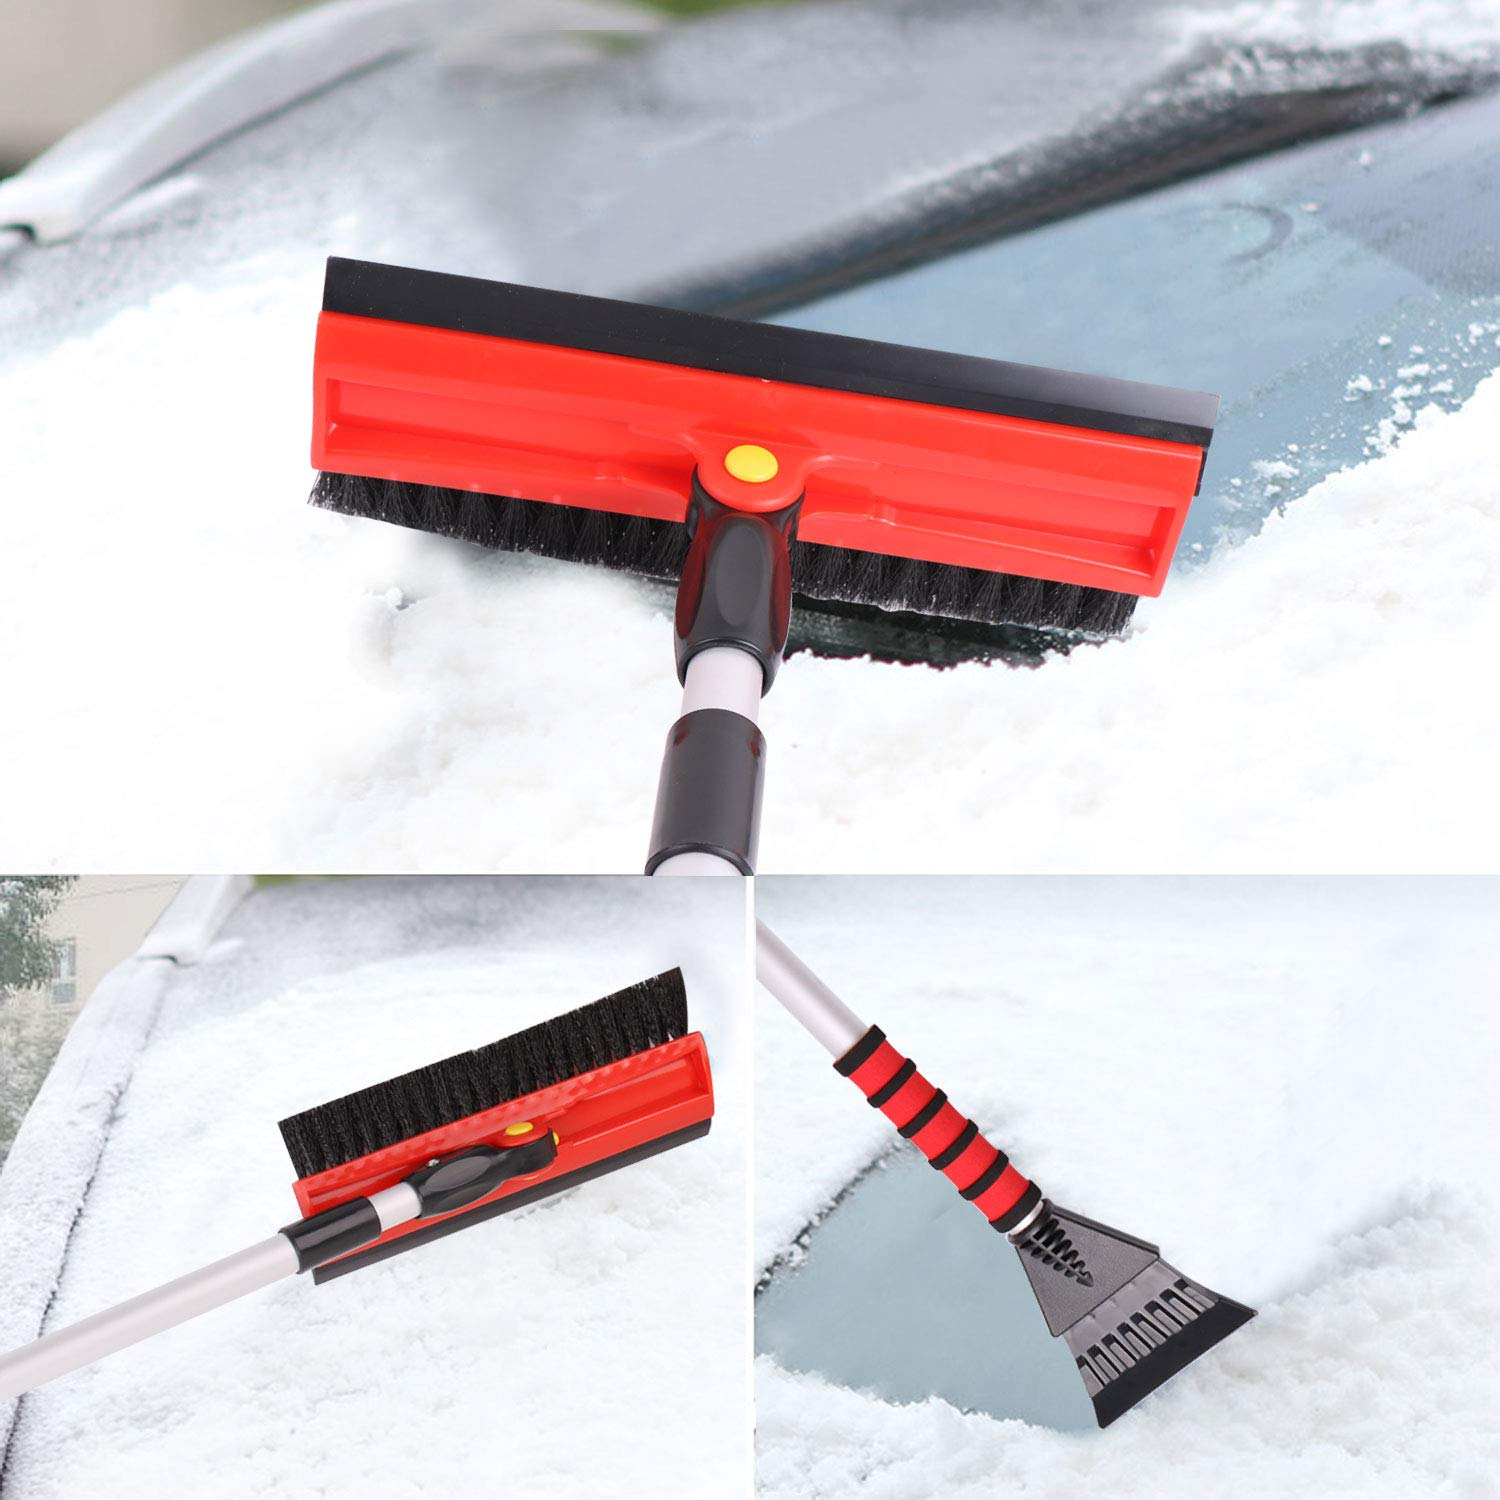 Drivaid 48 Snow Brush for Car Ice Scraper with Soft Foam Grip 3 in 1 Snow Broom 90/°Whirl Brush Head Extendable T-Shape Snow Brush for Auto Truck SUV